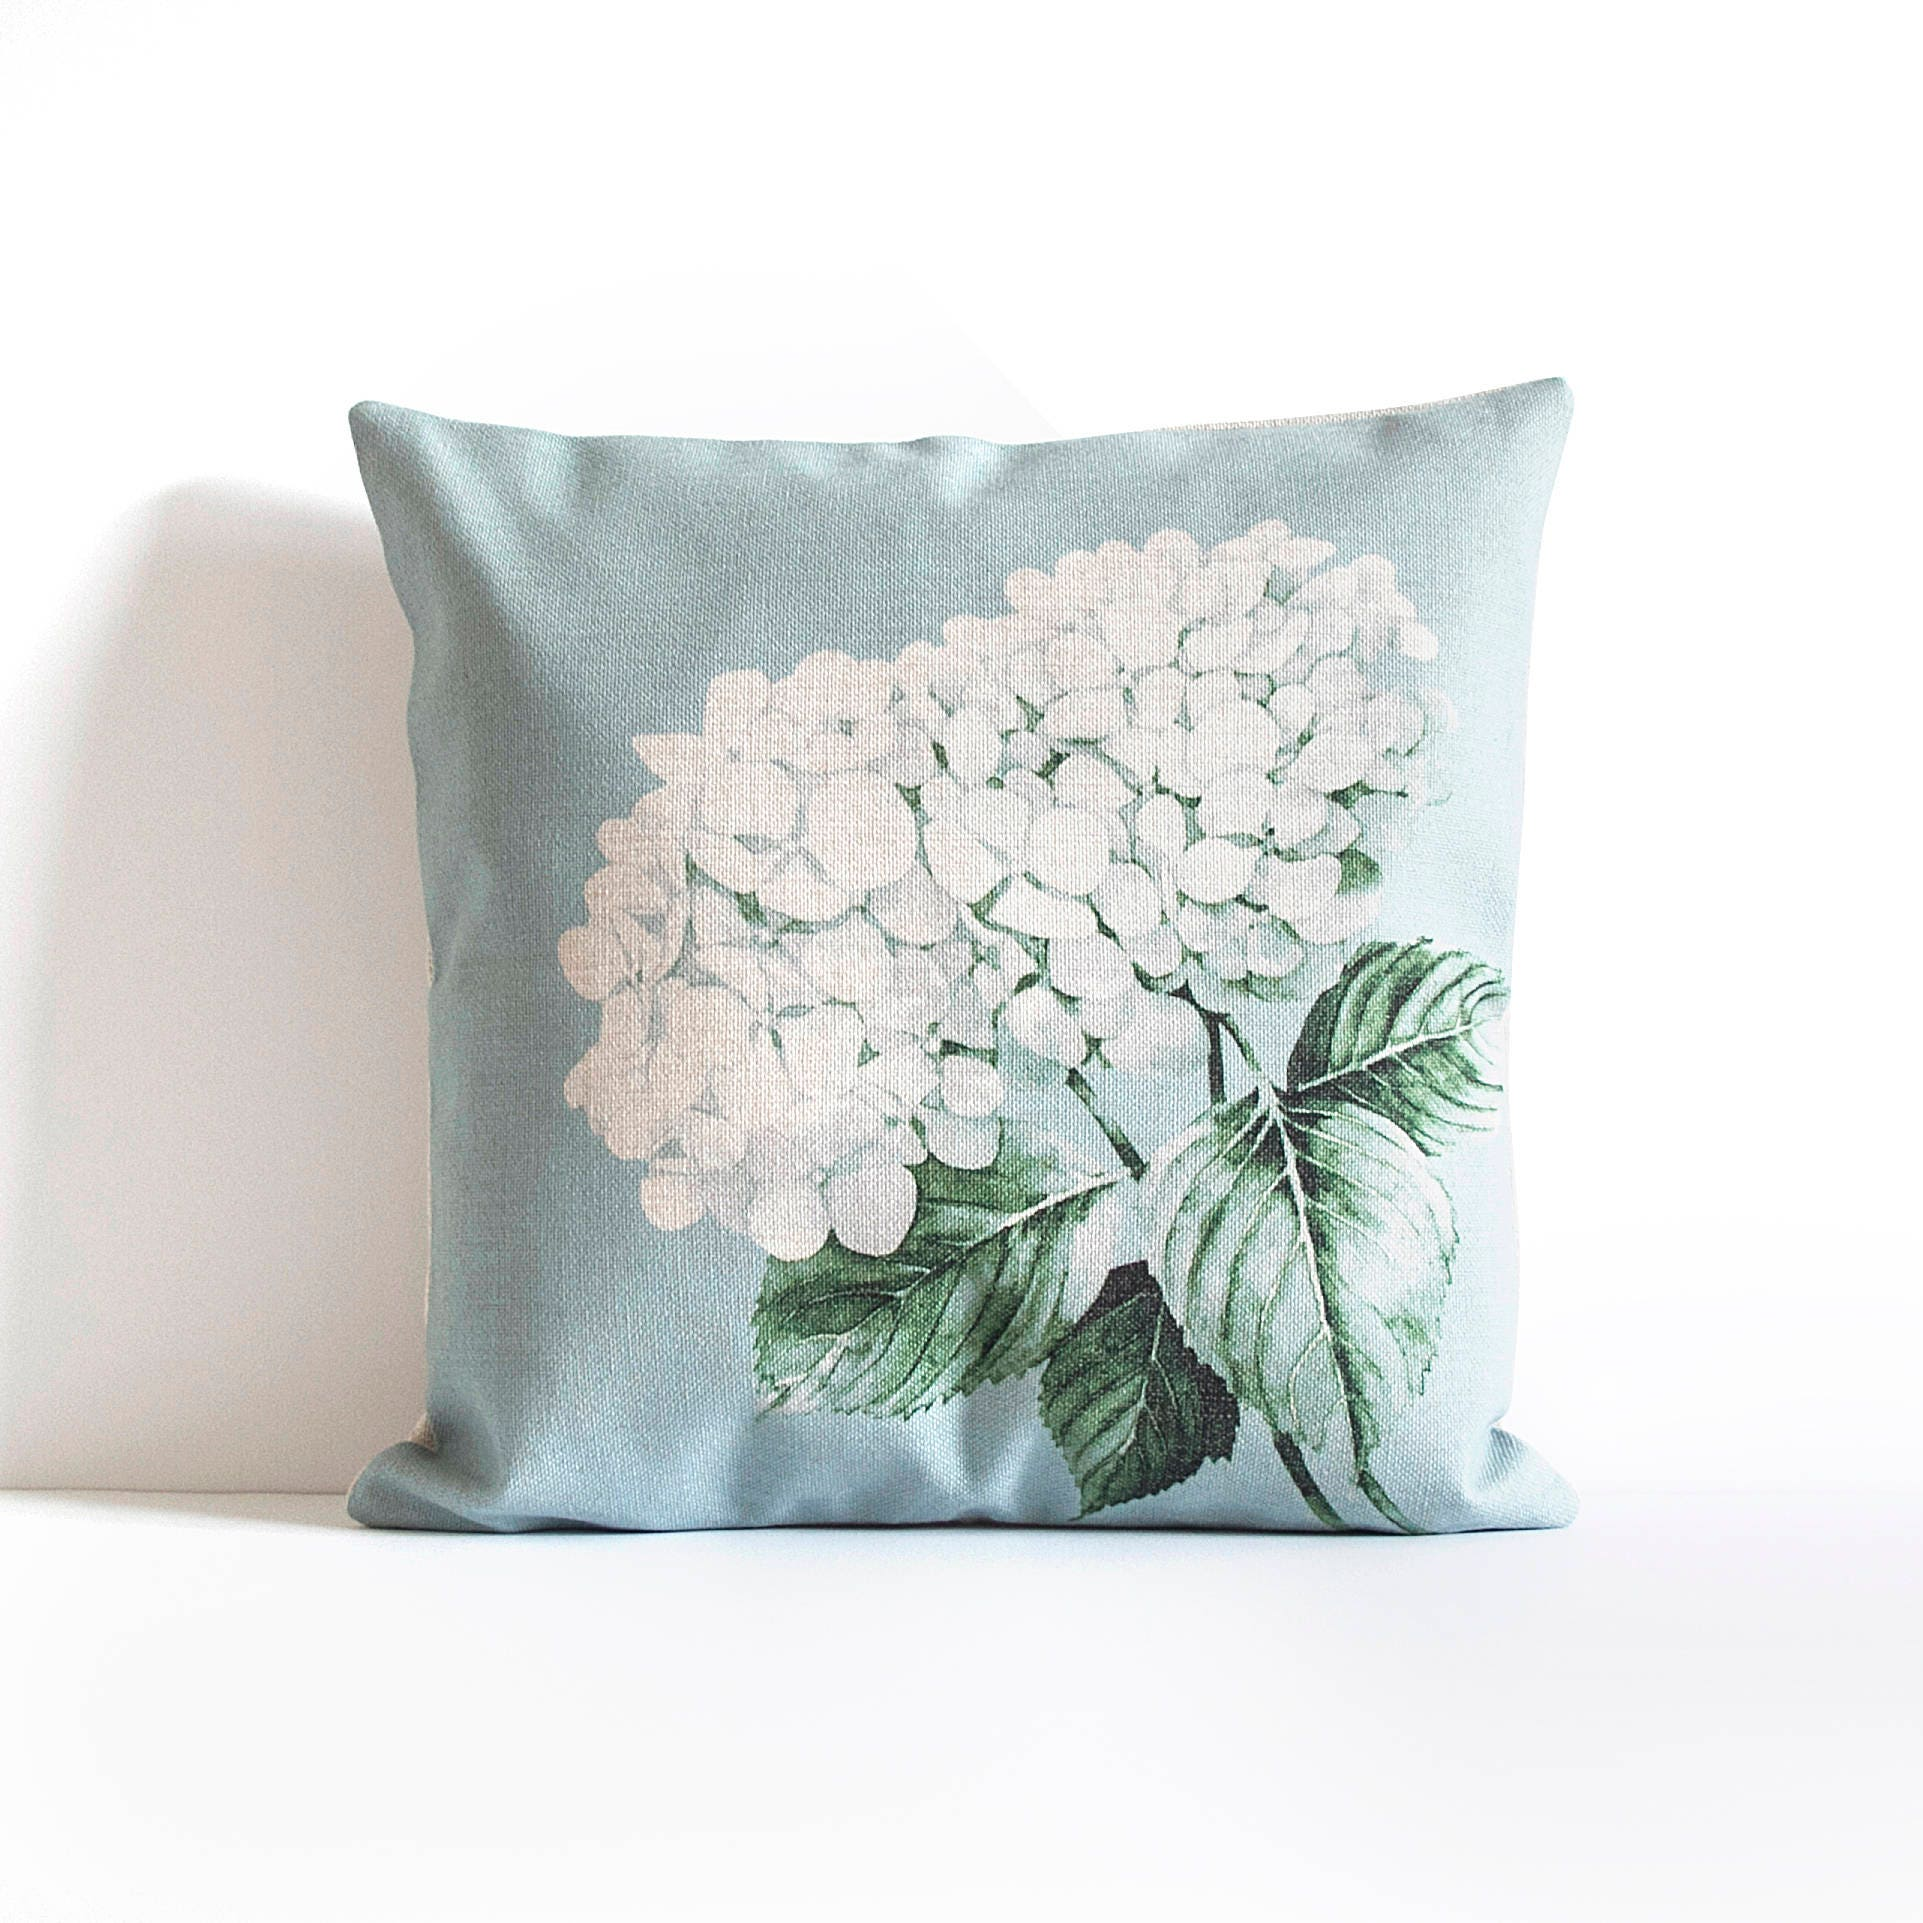 Blue Hydrangea Throw Pillow Cover Pillow Covers Throw